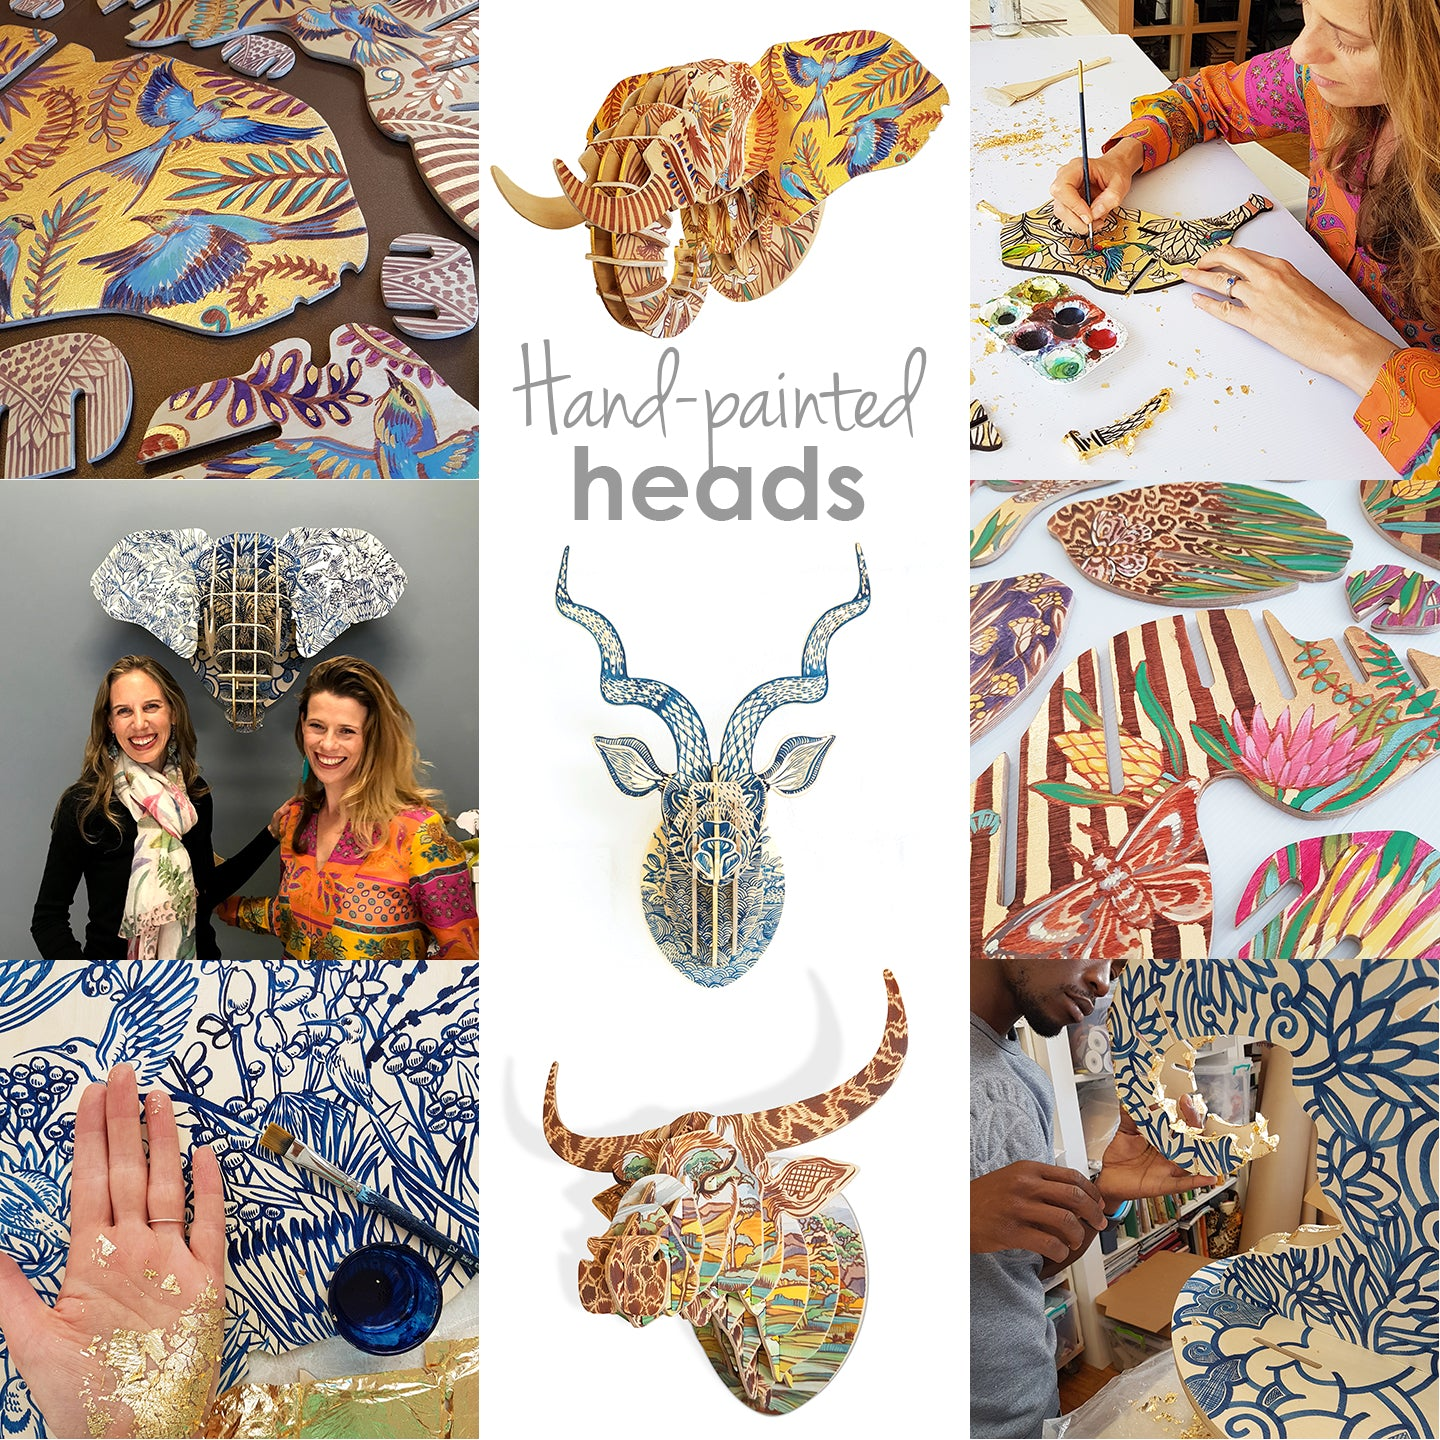 Hand painted animal heads by artist Sharon Boonzaier